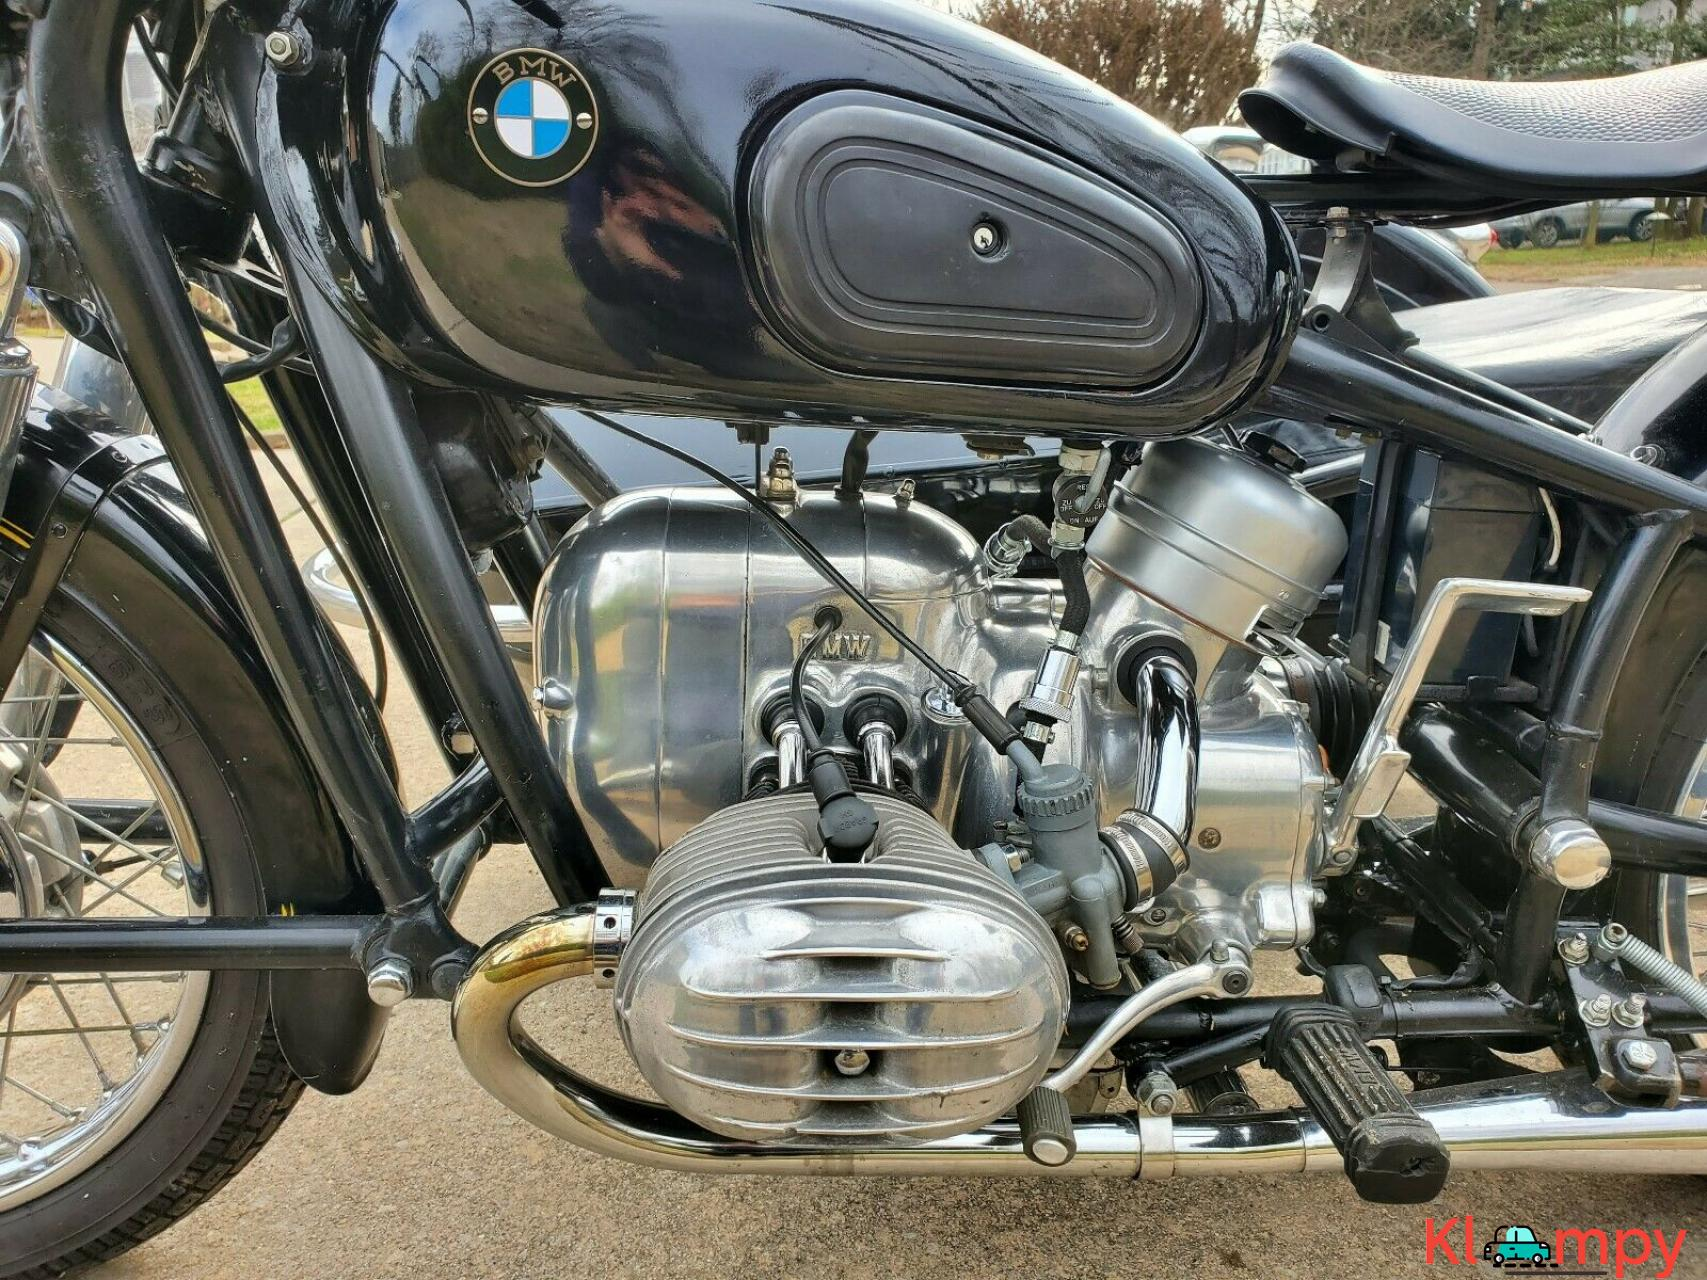 1960 BMW R50 with Steib Sidecar Black - 7/12